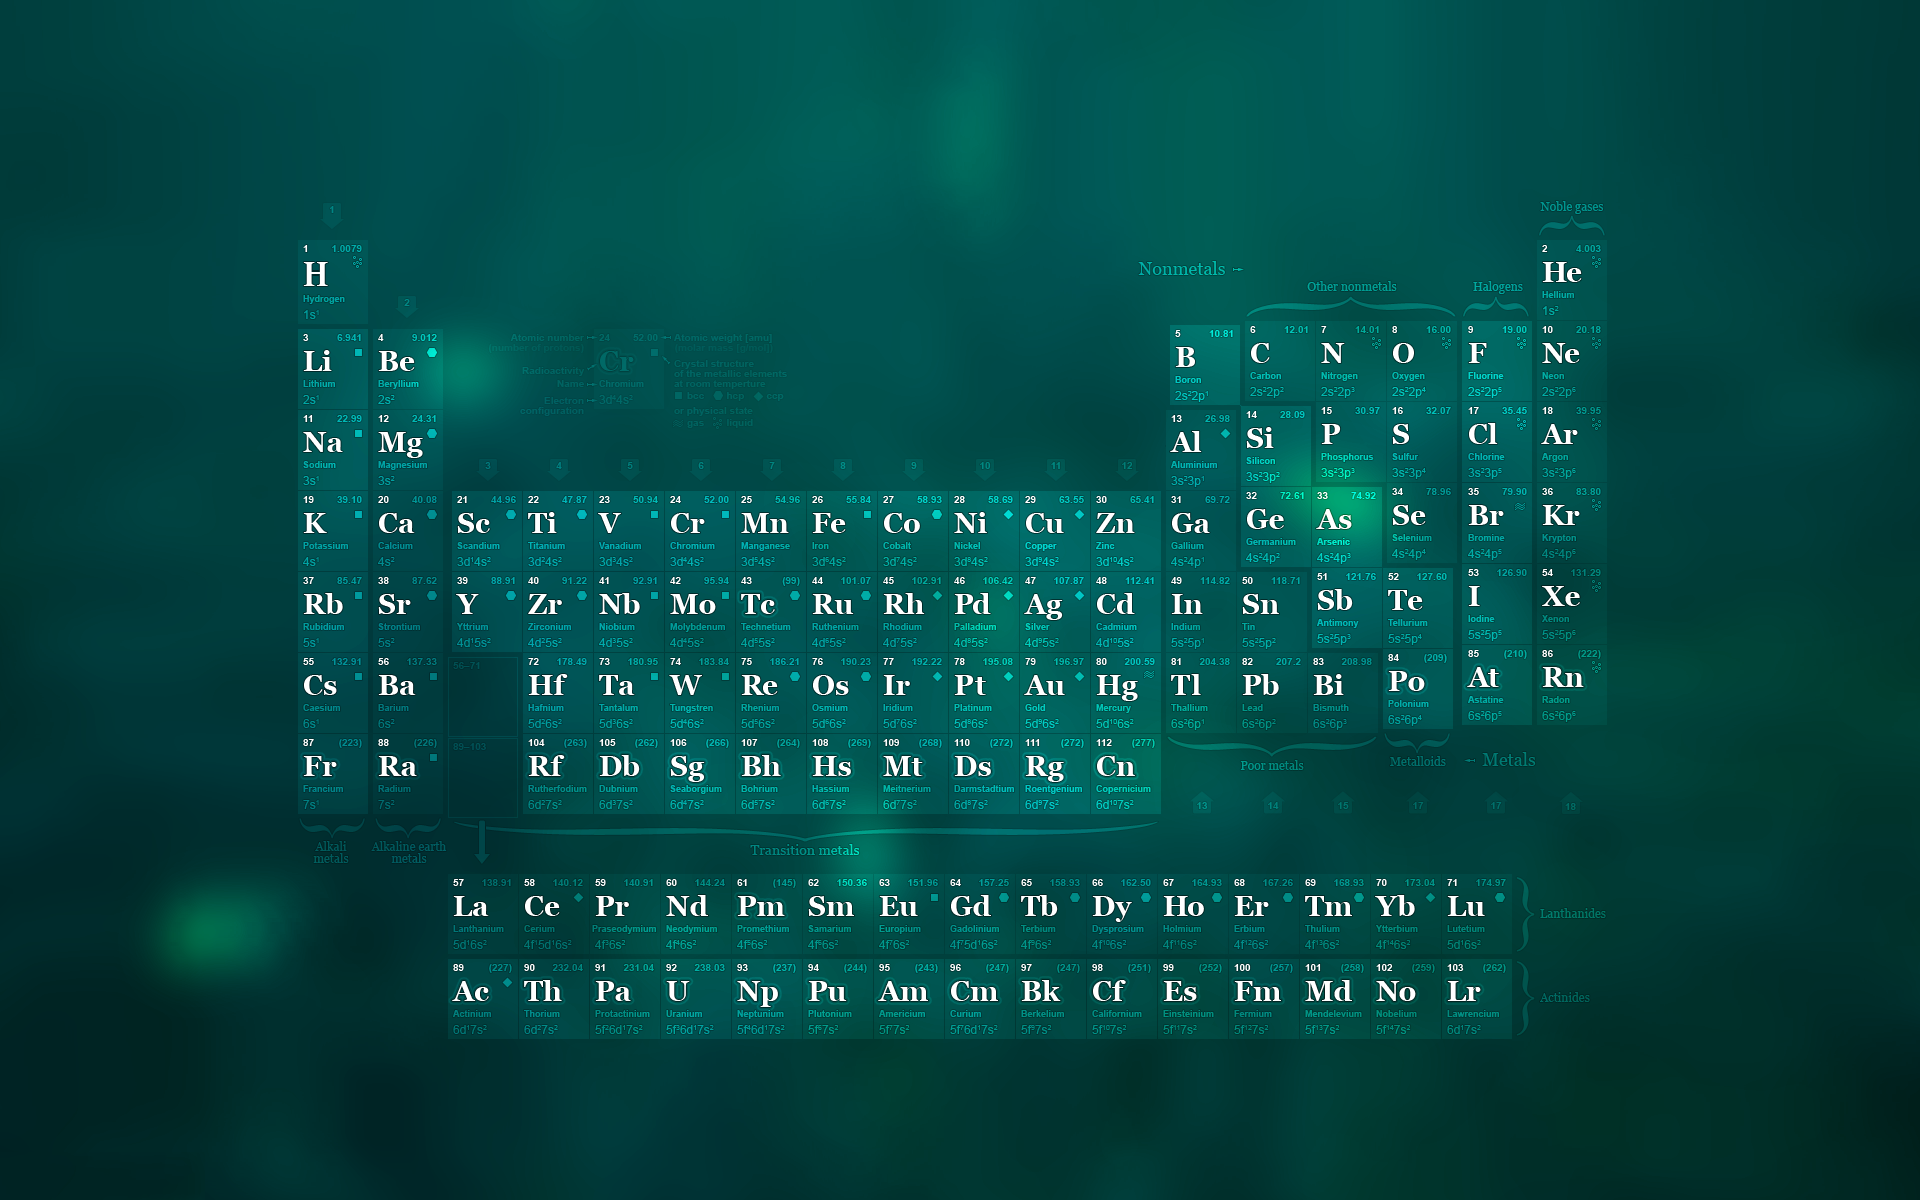 Pictures of Chemistry HD, 1920x1200 px, 12.18.15